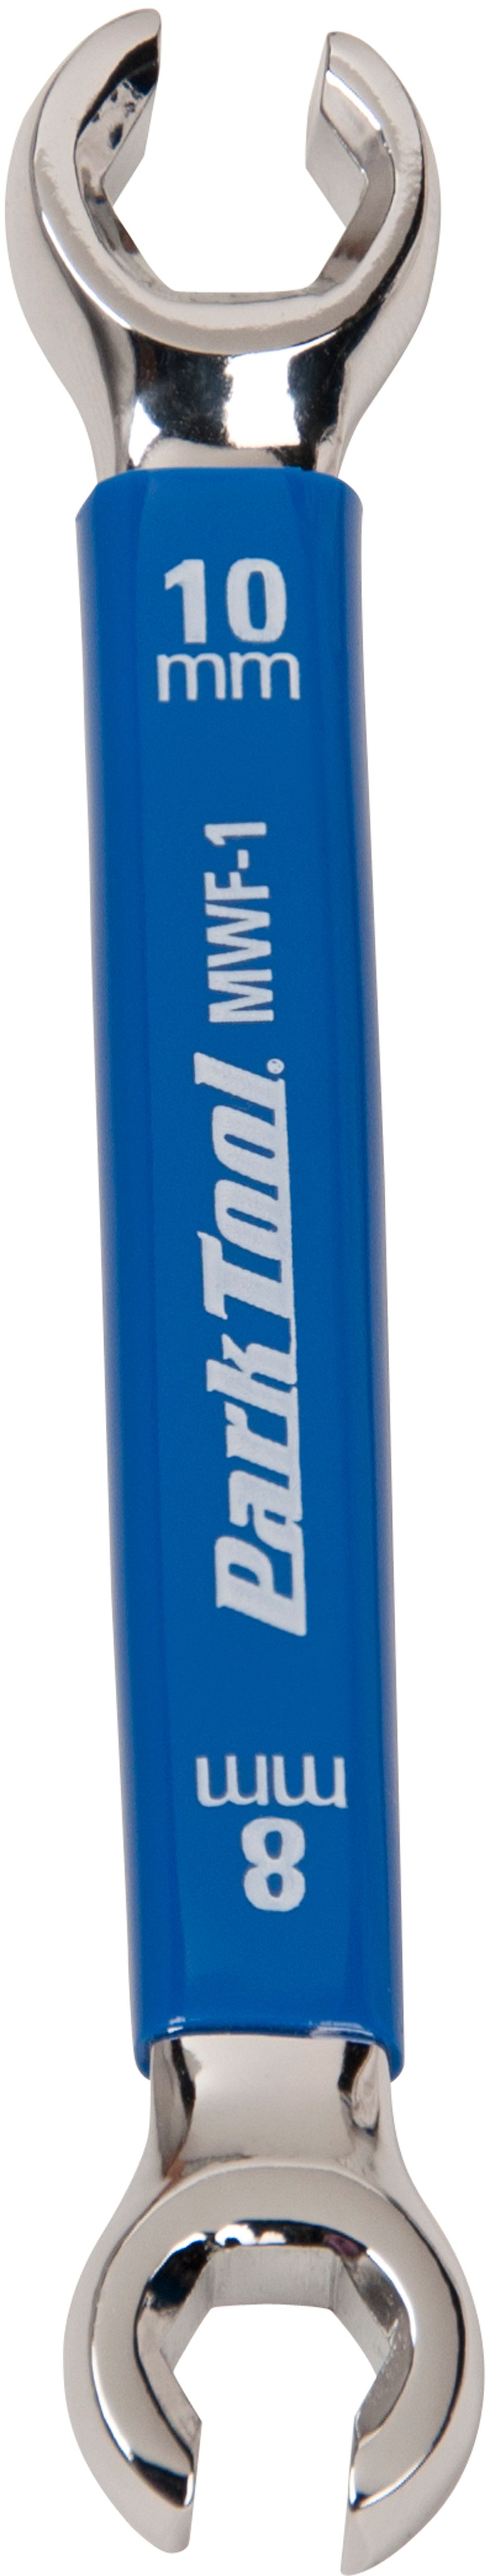 PARK TOOL TOOL PARK FLARE NUT WRENCH